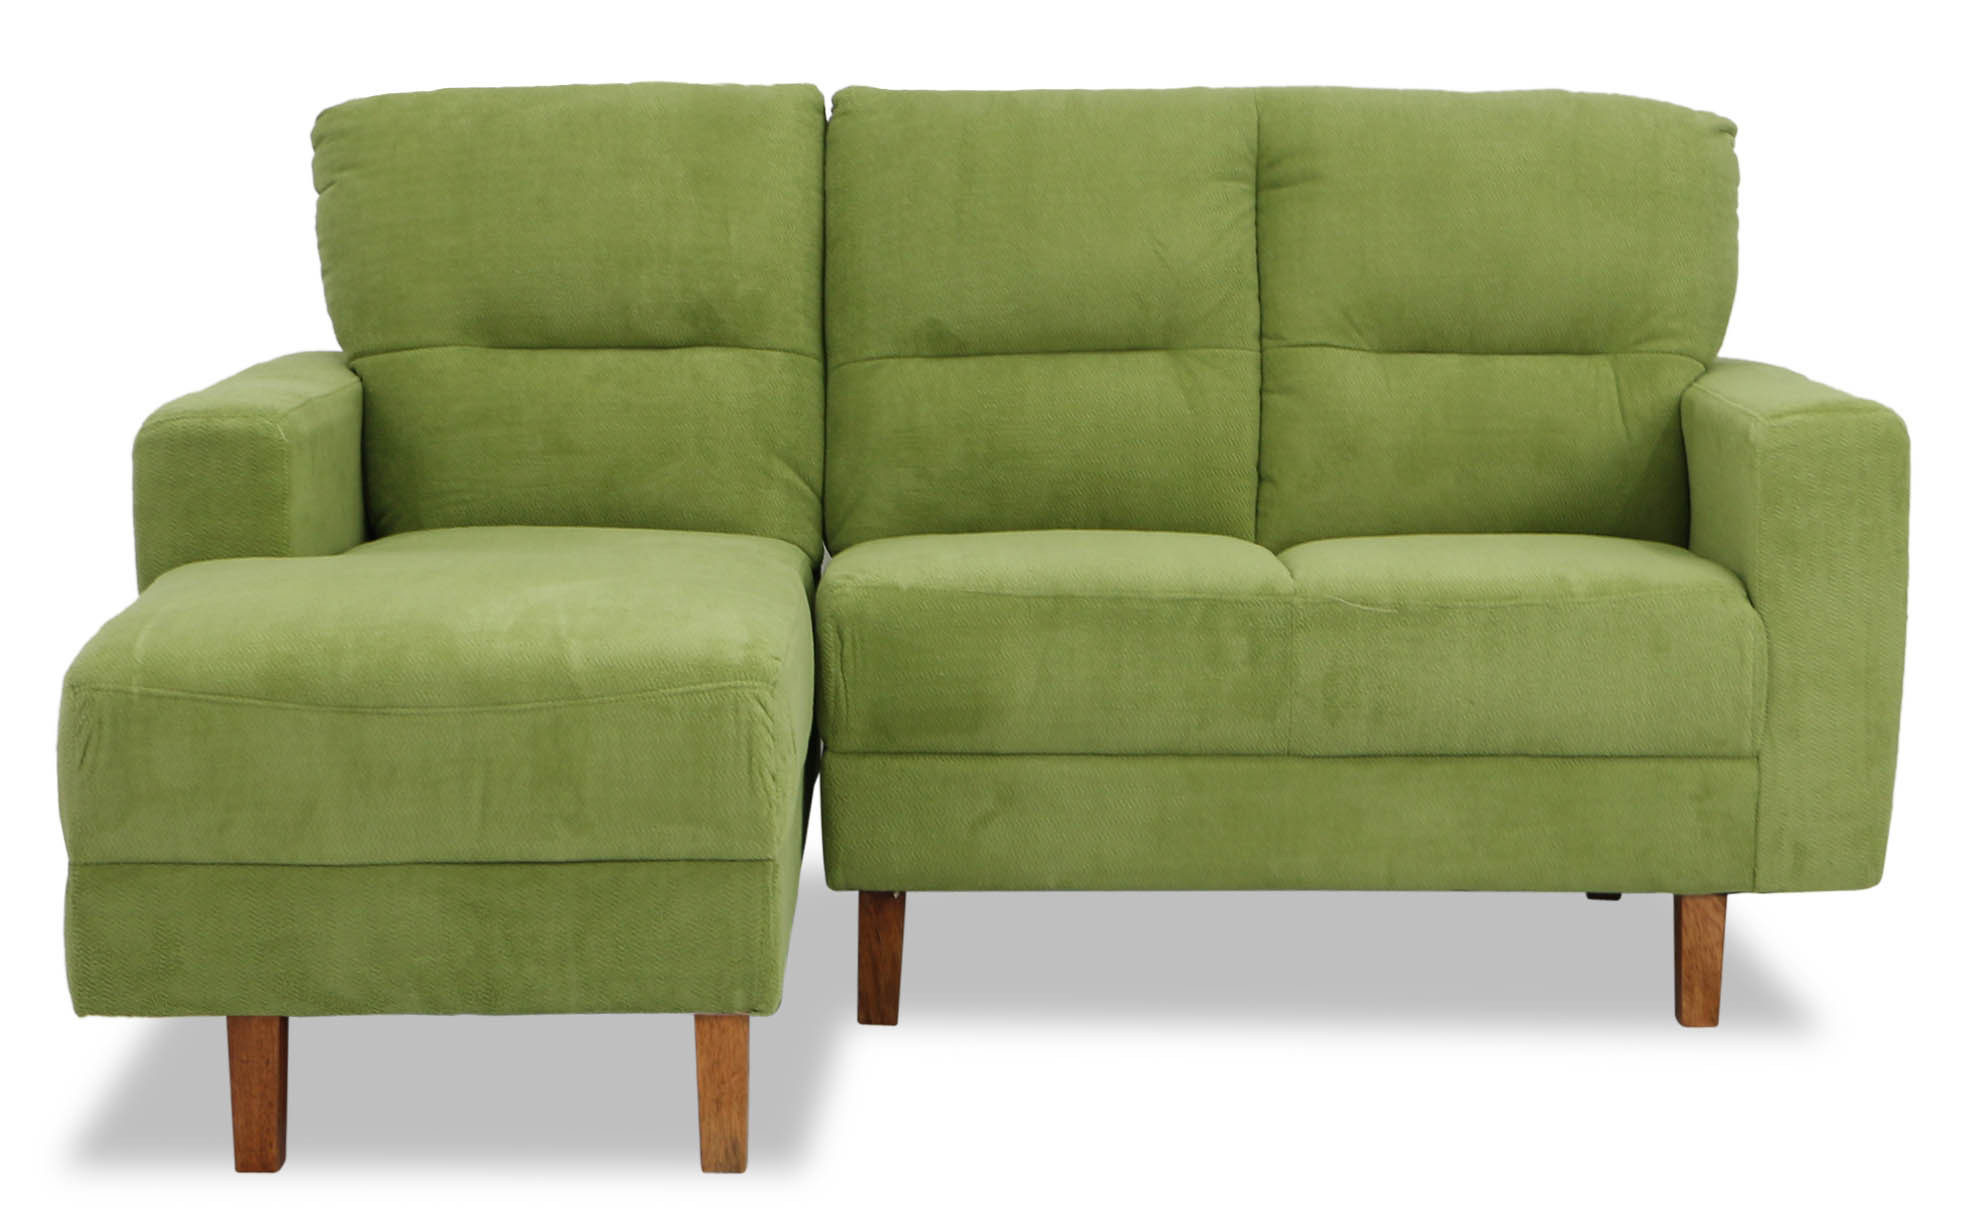 1 Stock Offer Sycamore L Shaped Sofa Kiwi Rr14255